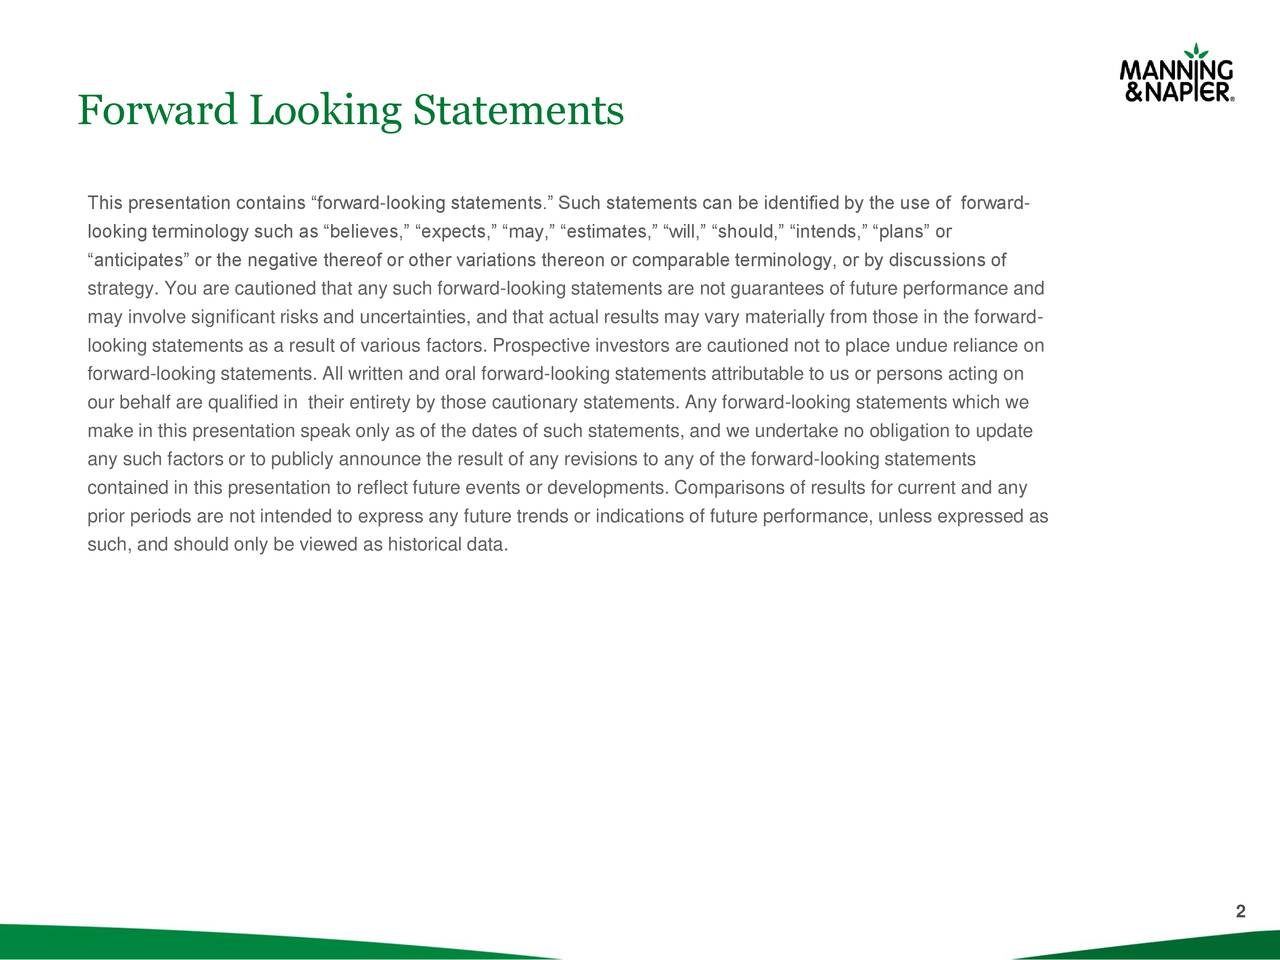 """This presentation contains """"forward-looking statements."""" Such statements can be identified by the use of forward- looking terminology such as """"believes,"""" """"expects,"""" """"may,"""" """"estimates,"""" """"will,"""" """"should,"""" """"intends,"""" """"plans"""" or """"anticipates"""" or the negative thereof or other variations thereon or comparable terminology, or by discussions of strategy. You are cautioned that any such forward-looking statements are not guarantees of future performance and may involve significant risks and uncertainties, and that actual results may vary materially from those in the forward- looking statements as a result of various factors. Prospective investors are cautioned not to place undue reliance on forward-looking statements. All written and oral forward-looking statements attributable to us or persons acting on our behalf are qualified in their entirety by those cautionary statements. Any forward-looking statements which we make in this presentation speak only as of the dates of such statements, and we undertake no obligation to update any such factors or to publicly announce the result of any revisions to any of the forward-looking statements contained in this presentation to reflect future events or developments. Comparisons of results for current and any prior periods are not intended to express any future trends or indications of future performance, unless expressed as such, and should only be viewed as historical data. 2"""